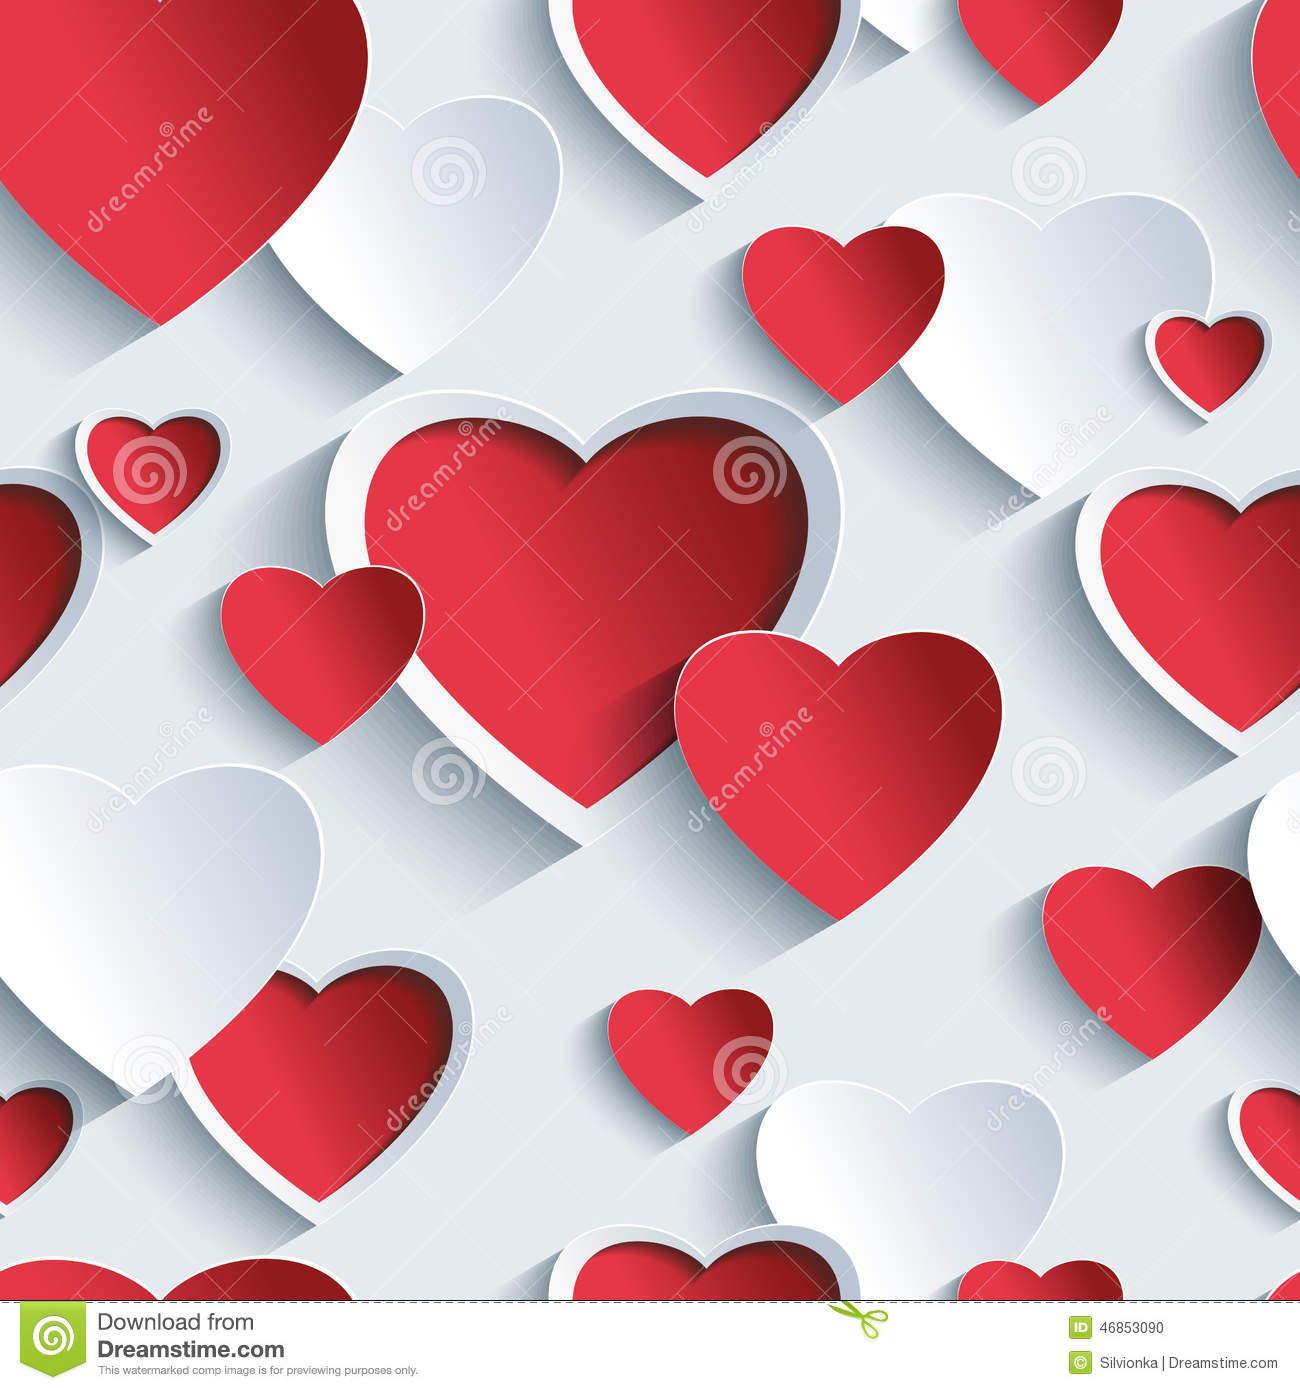 3d red valentine heart love wallpaper | best image background